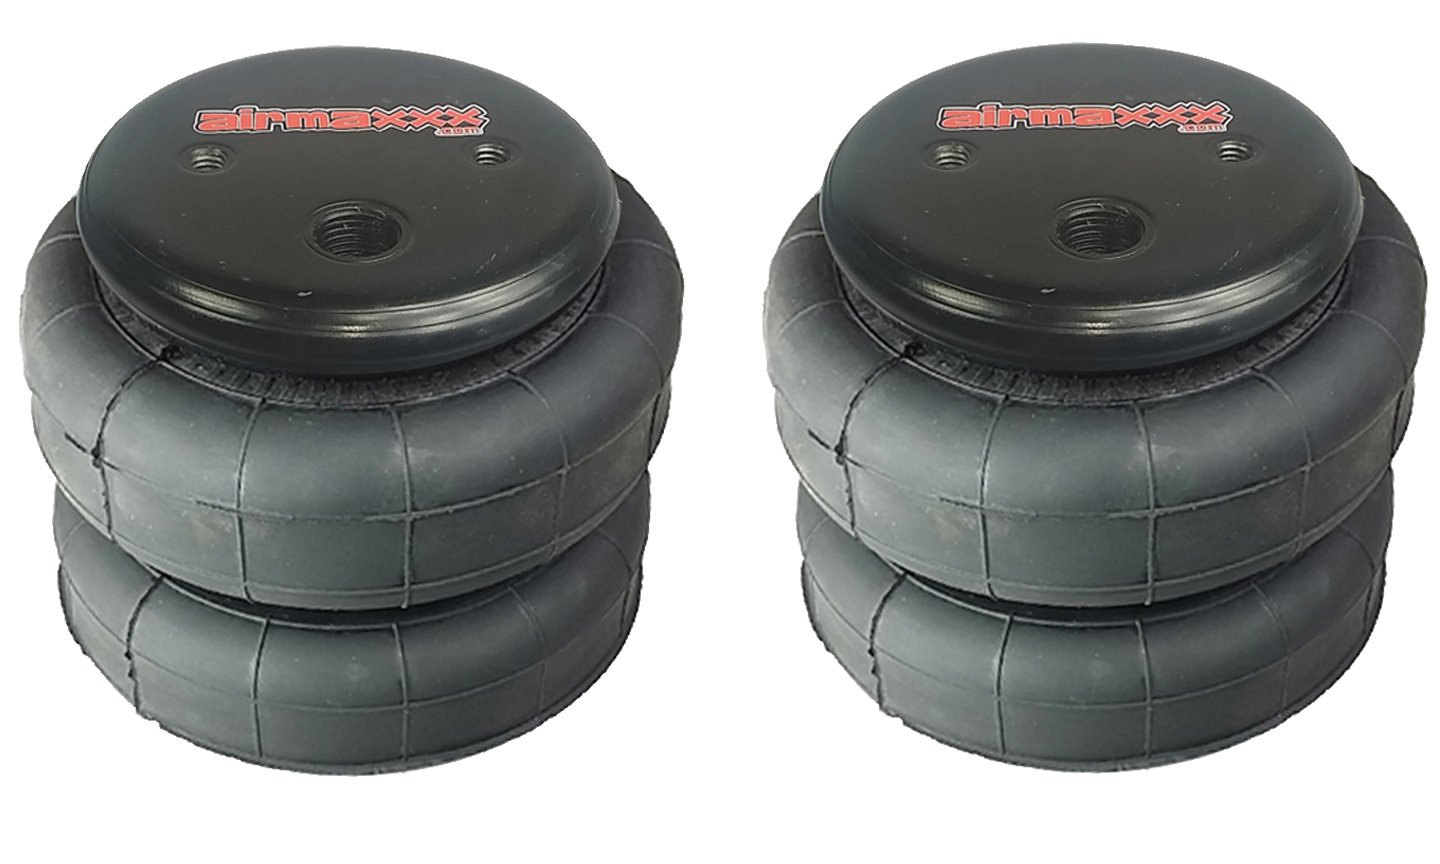 airmaxxx 2 Standard 2500 Air Ride Suspension Bags 1/2' npt